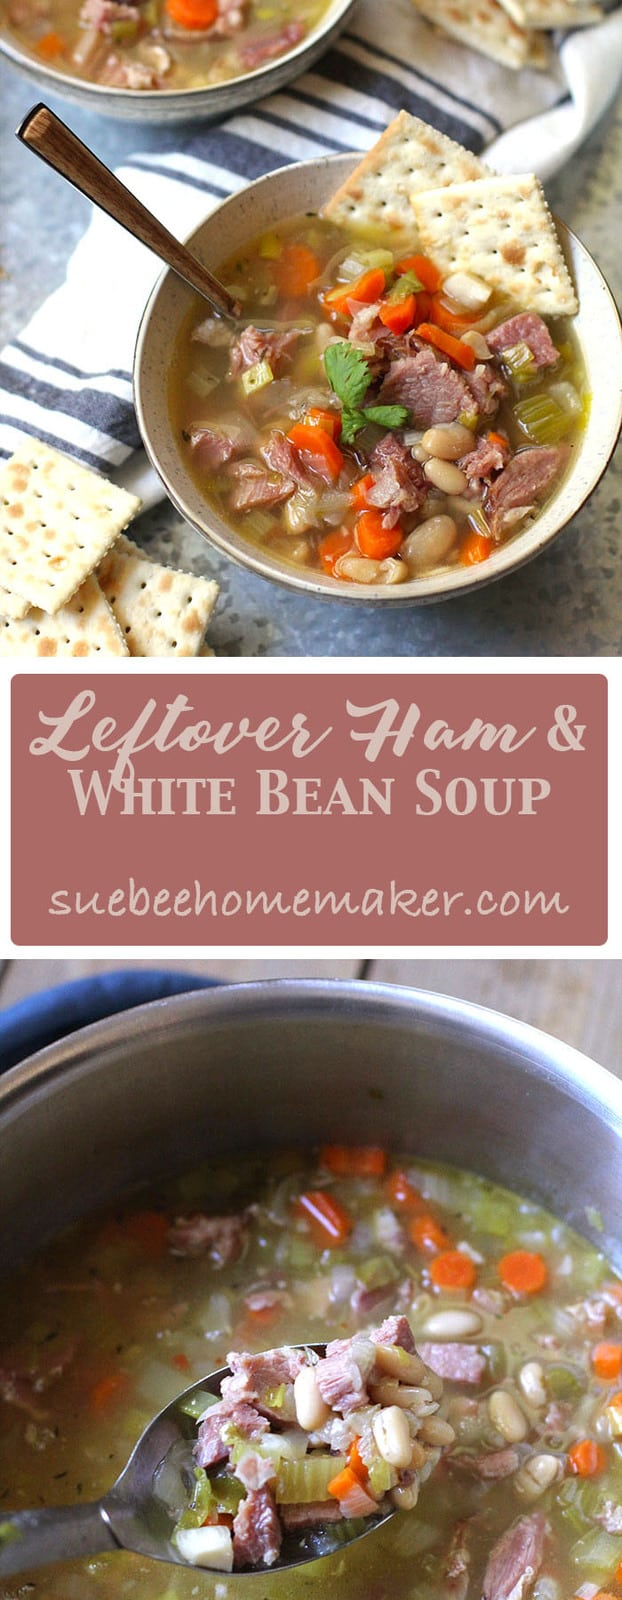 Leftover Ham and White Bean Soup is a clean-out-the-refrigerator type of meal. Boil your leftover ham bone, & add tons of veggies, beans, and leftover ham! | suebeehomemaker.com